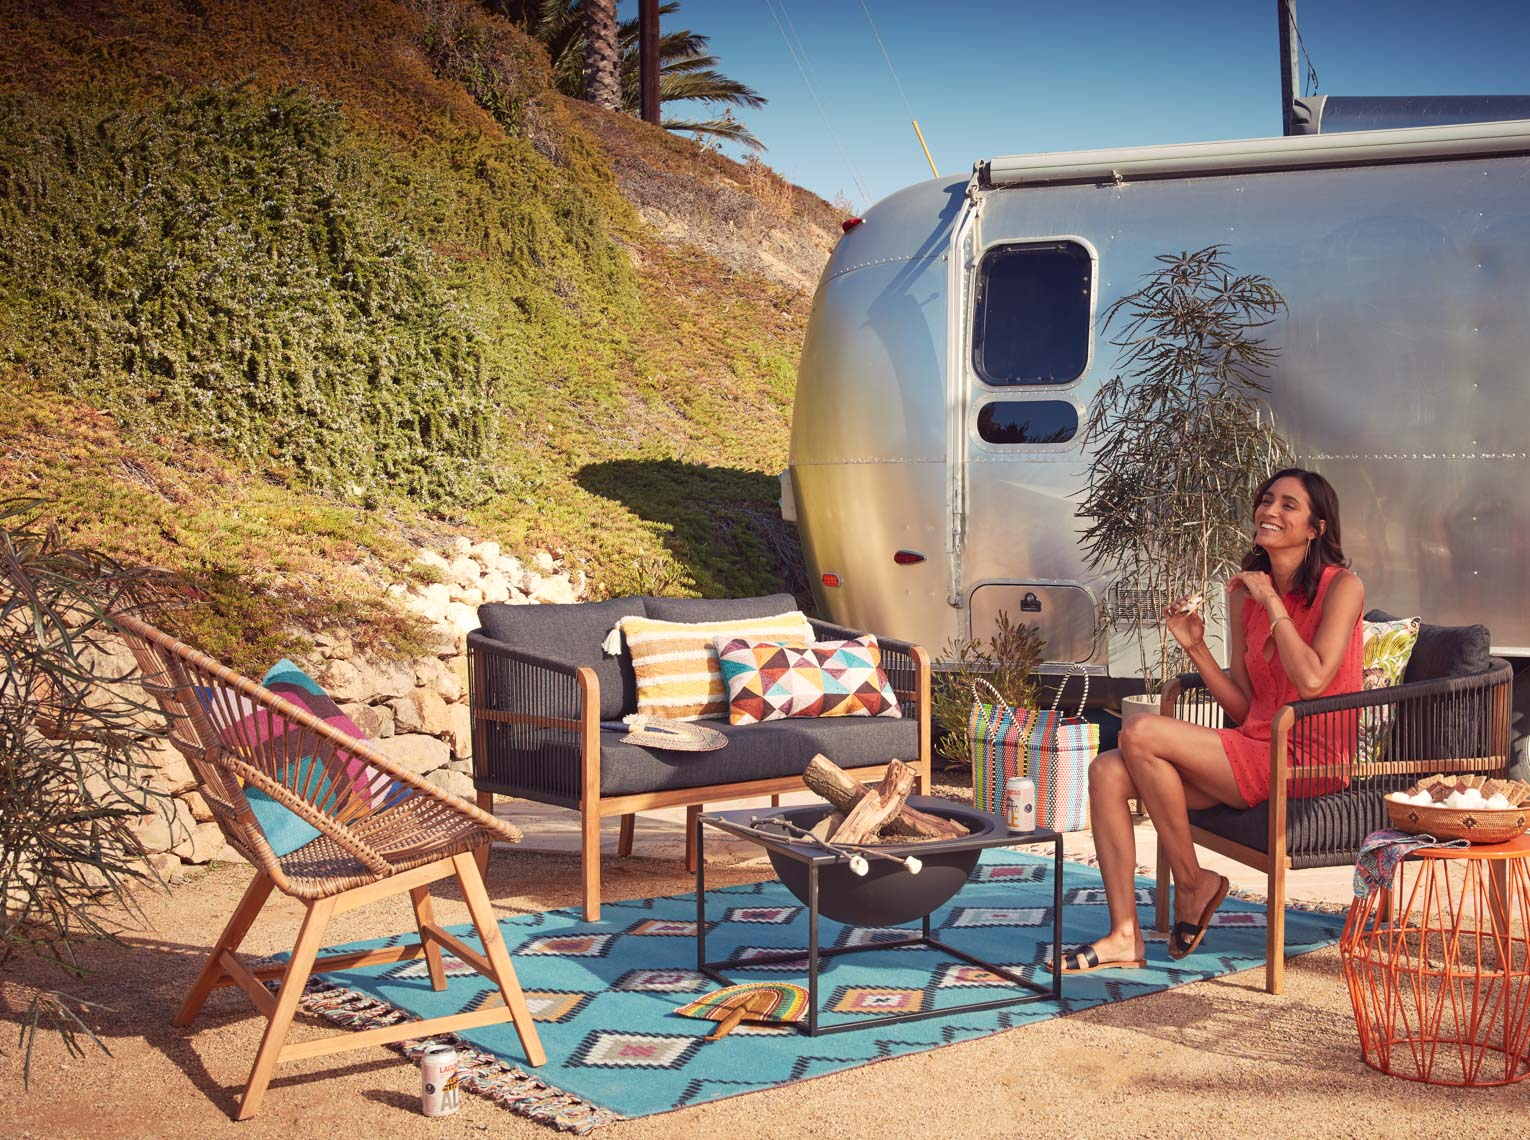 Woman laughing in orange drees seated at outdoor seating with fire bowl and Airstream trailer in the sun San Francisco lifestyle photographer